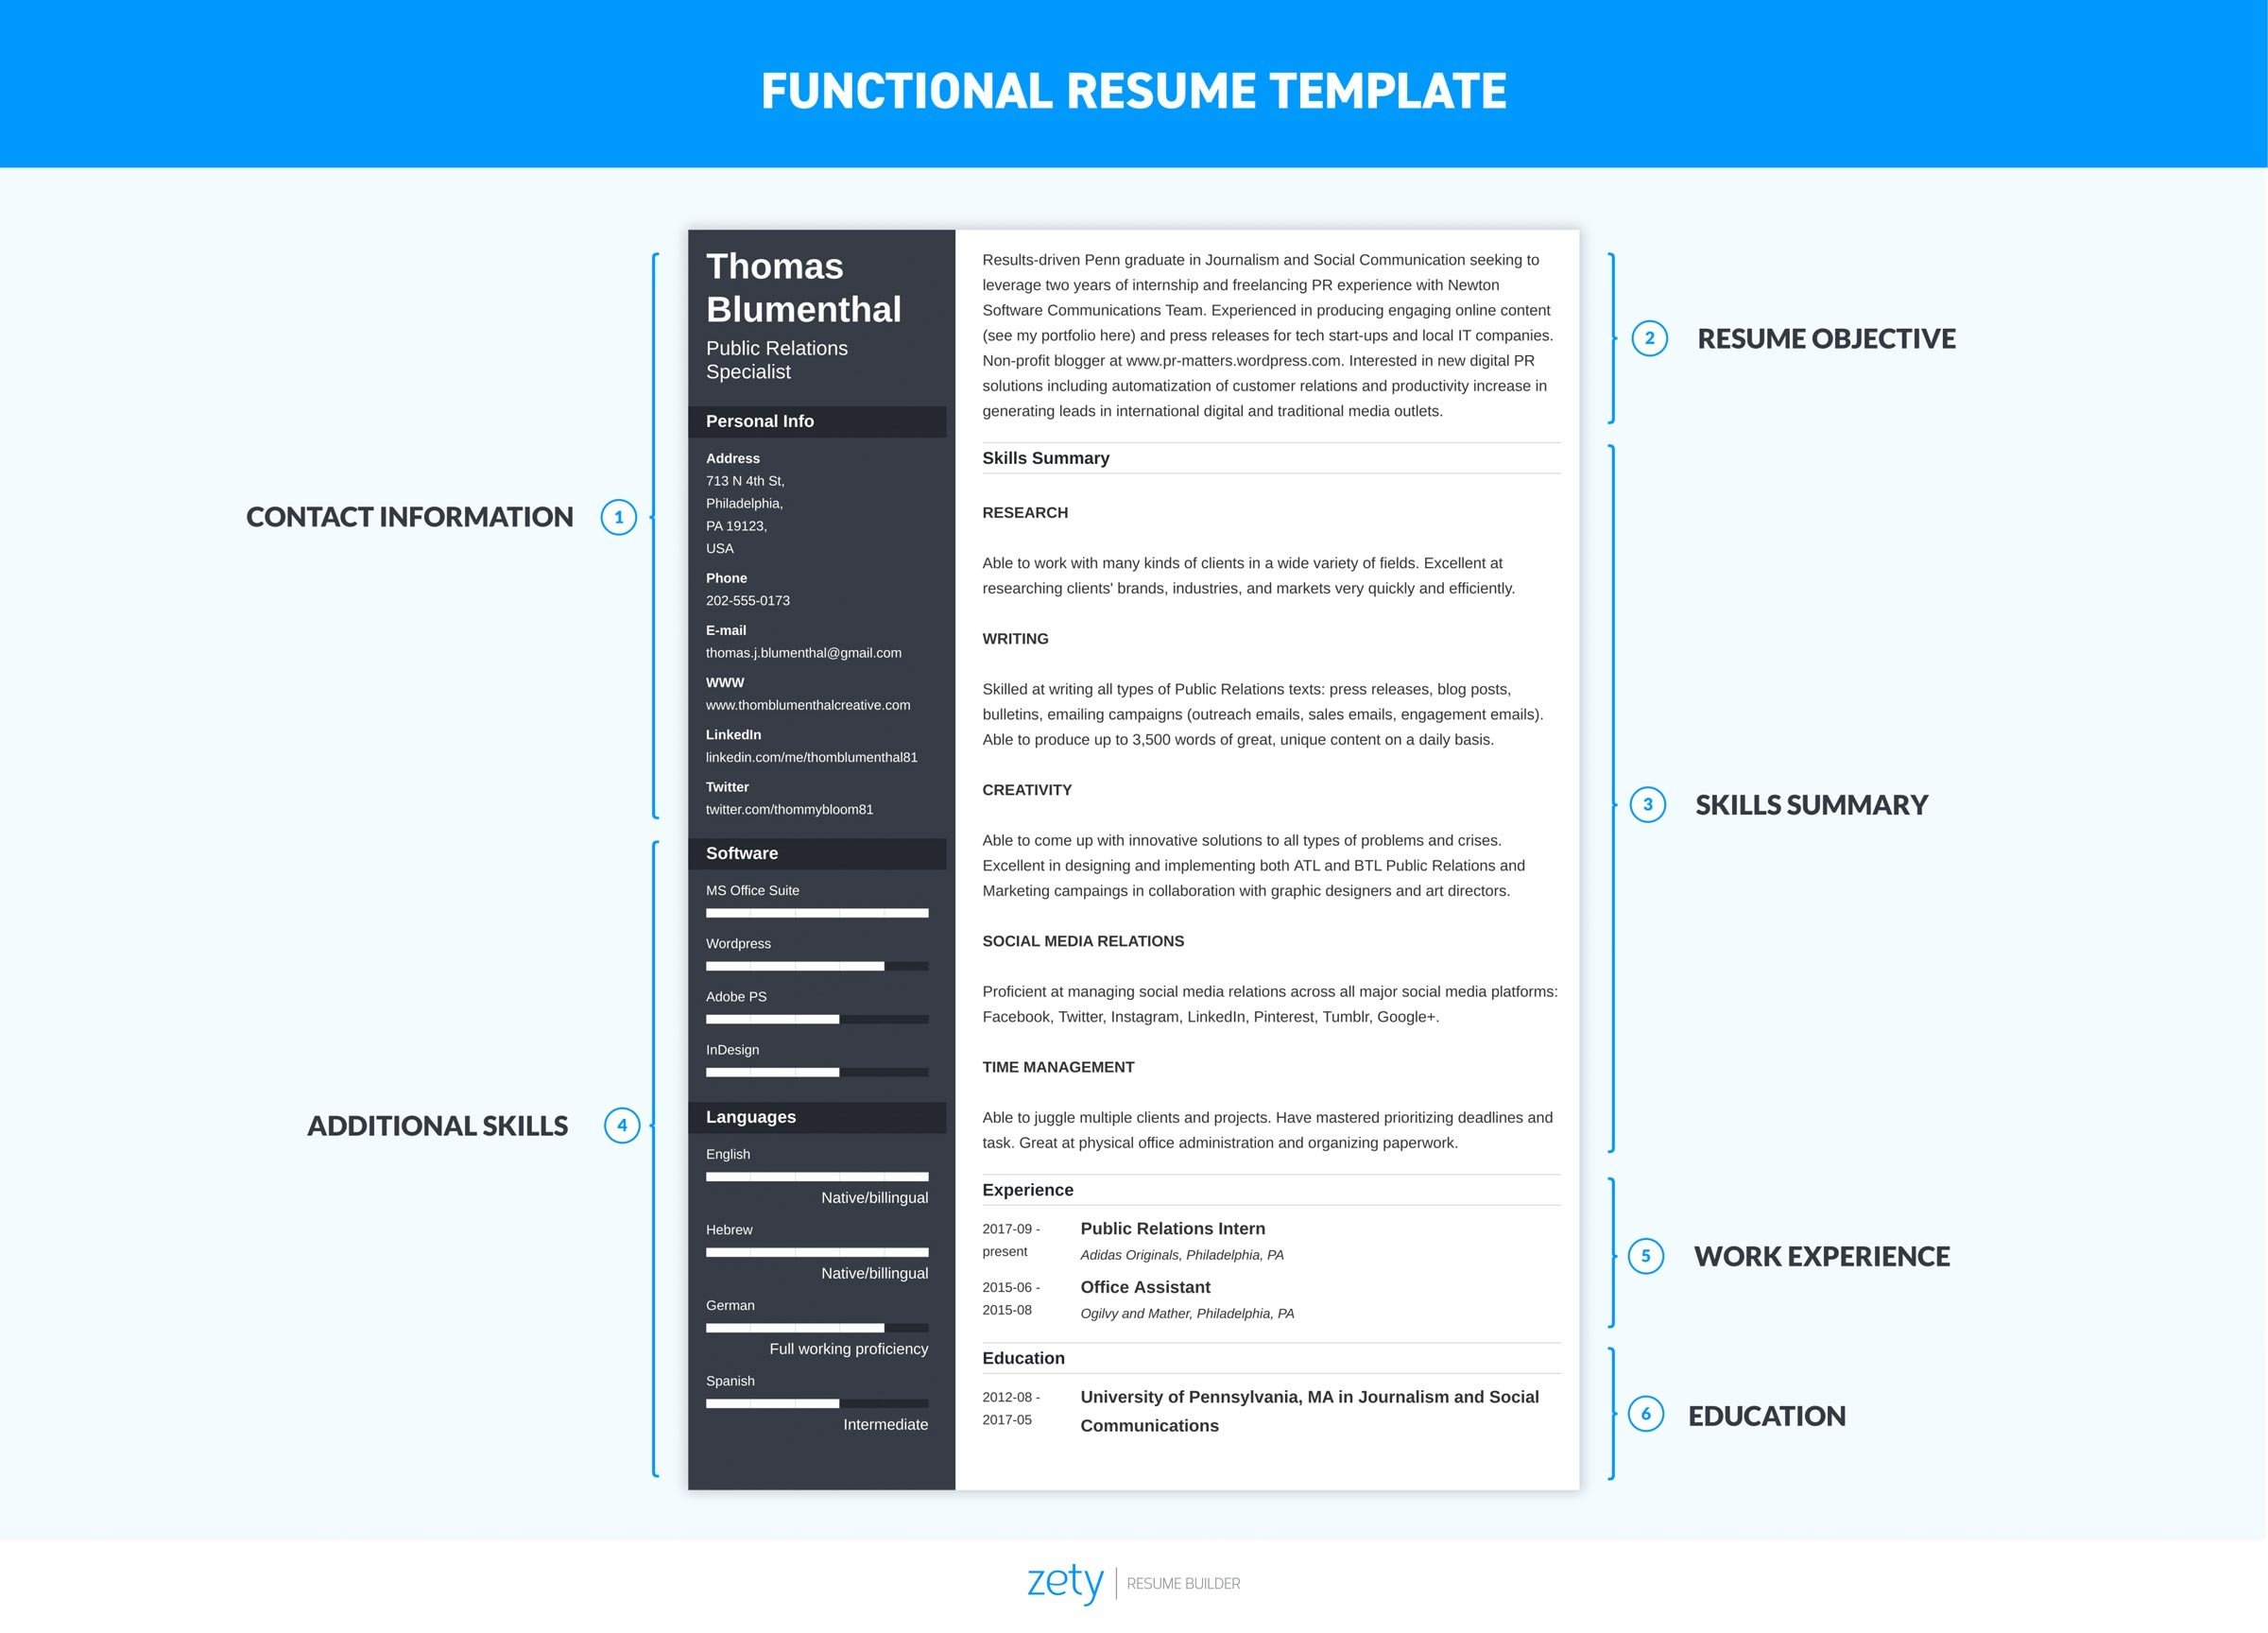 is functional resume format danetteforda adobe core template free easy language levels Resume Adobe Core Functional Resume